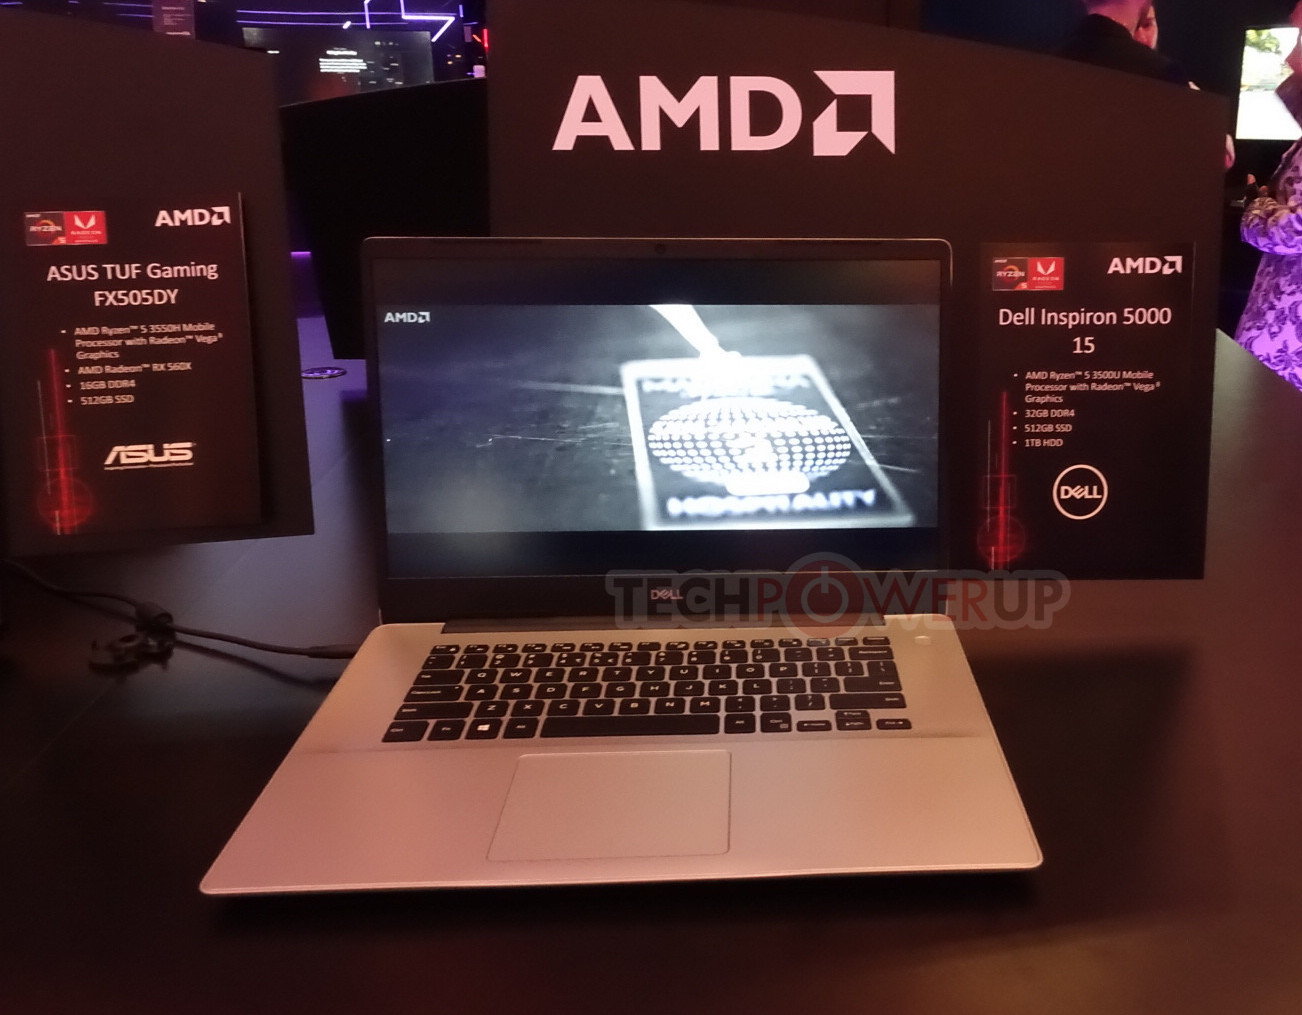 AMD Showcases Ryzen and Radeon Powered Laptops at CES 2019 | TechPowerUp